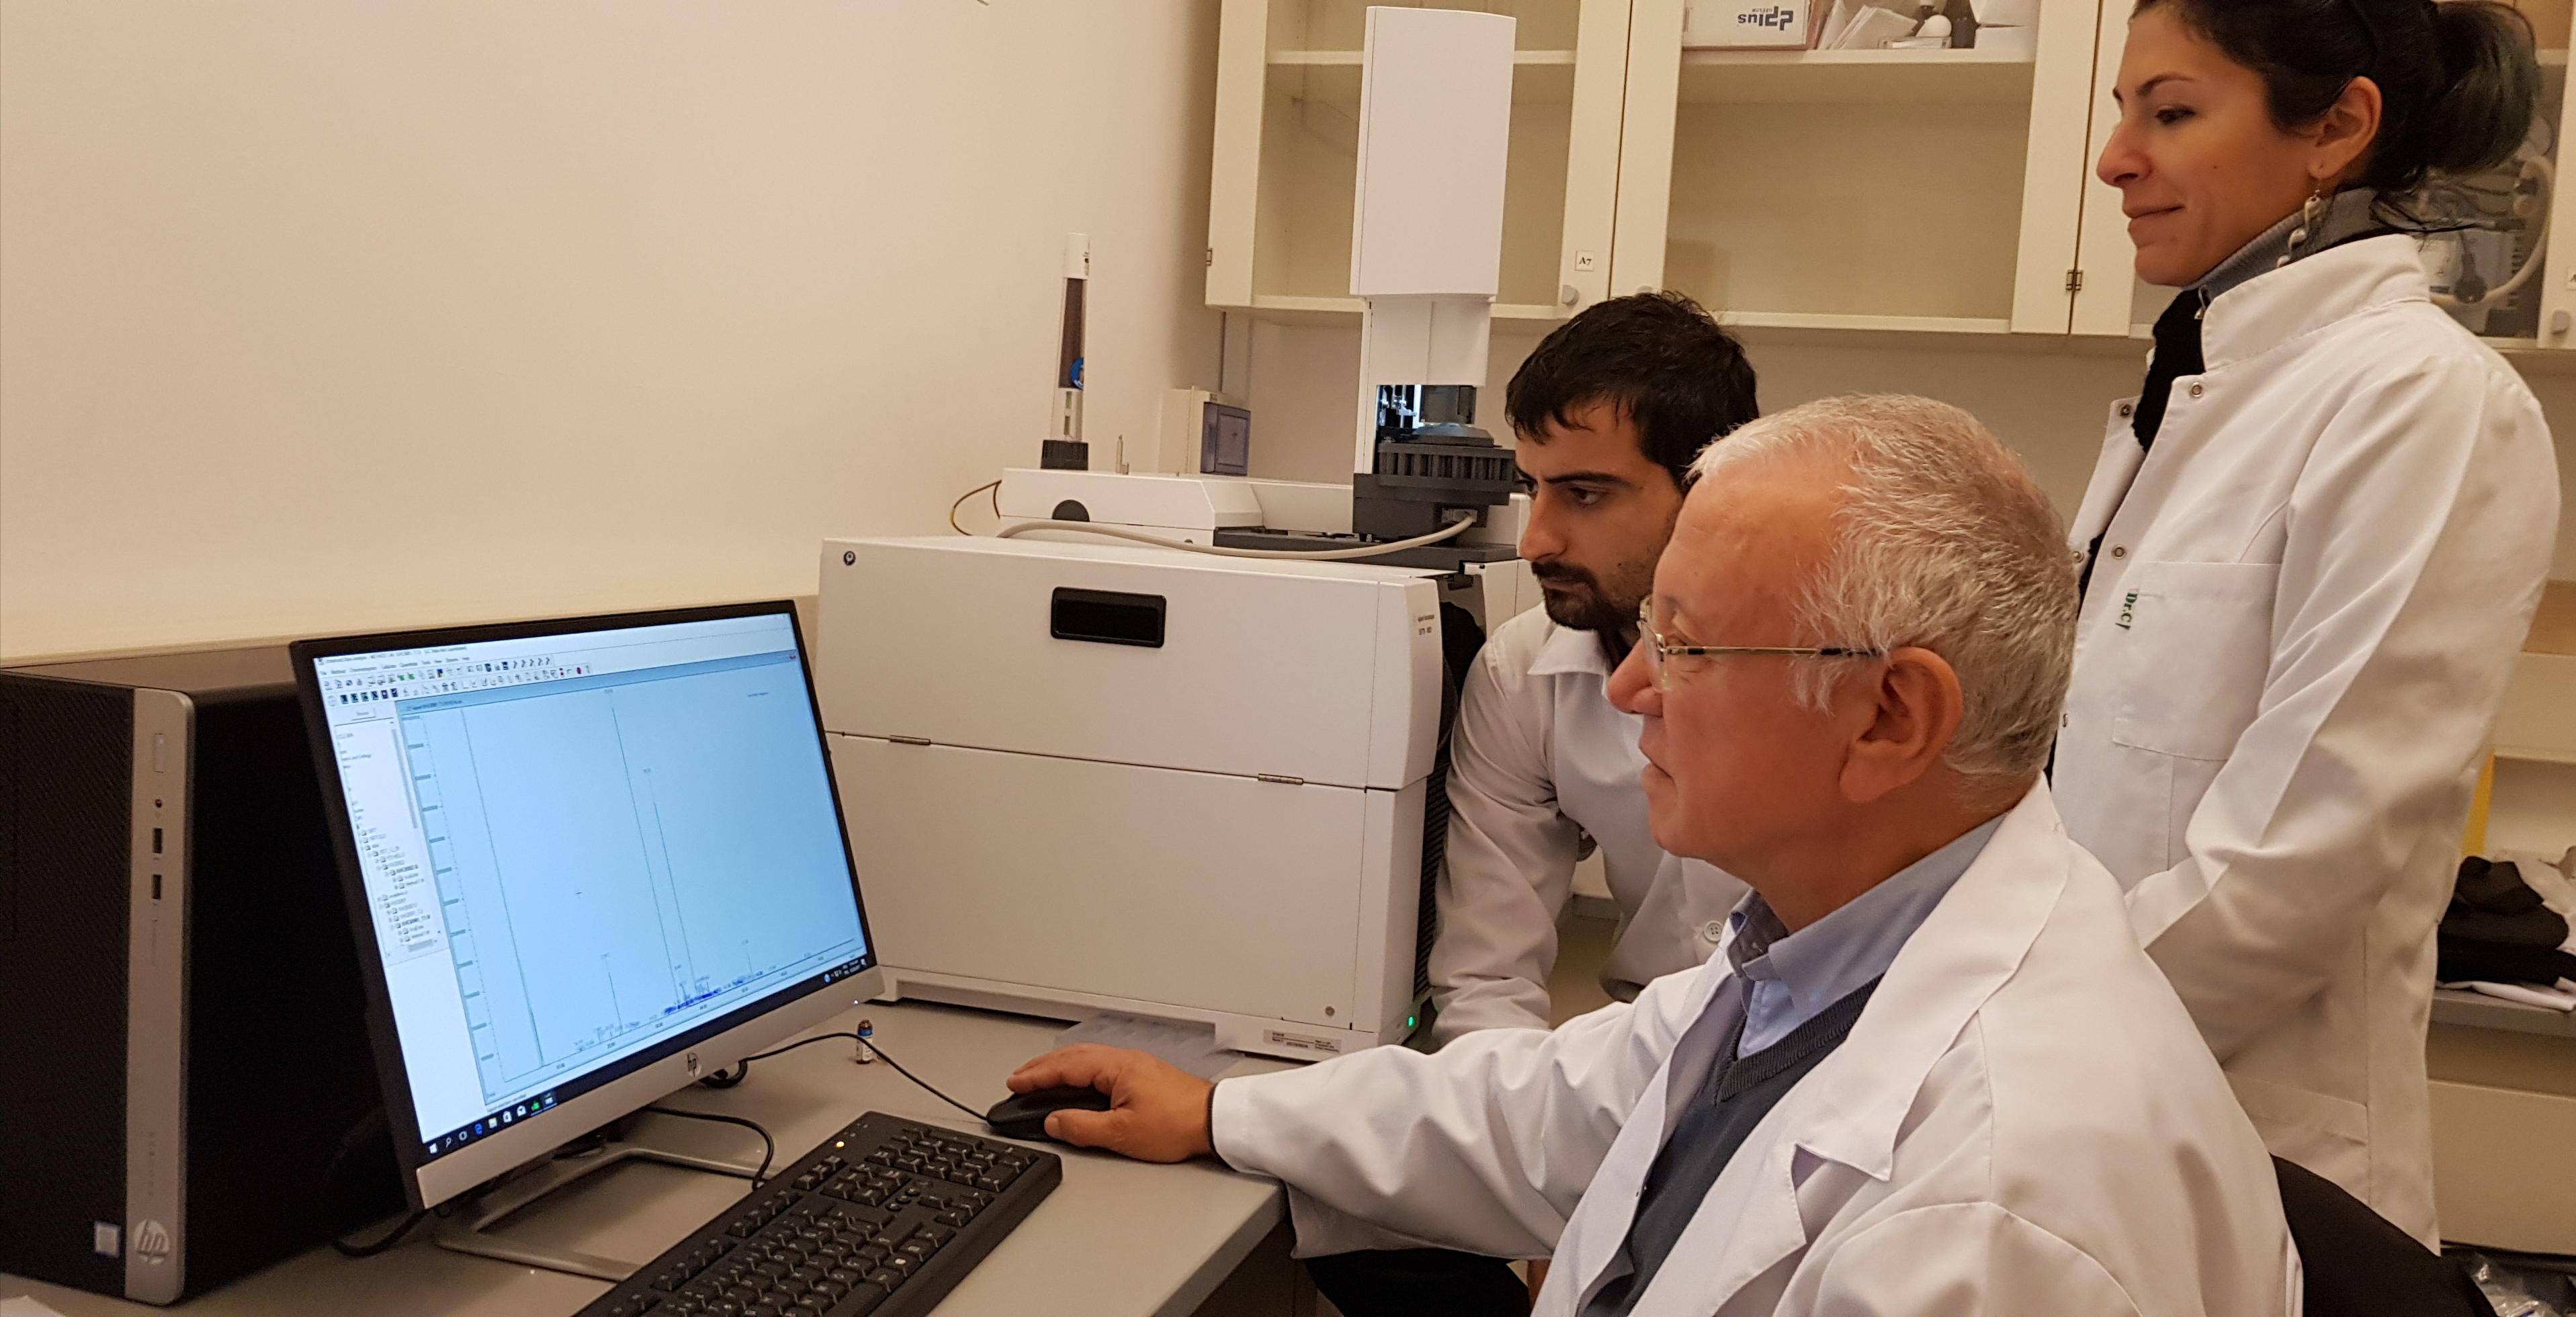 Near East University Faculty of Pharmacy has established a System to Analyze Essential Oils of Aromatic Plants